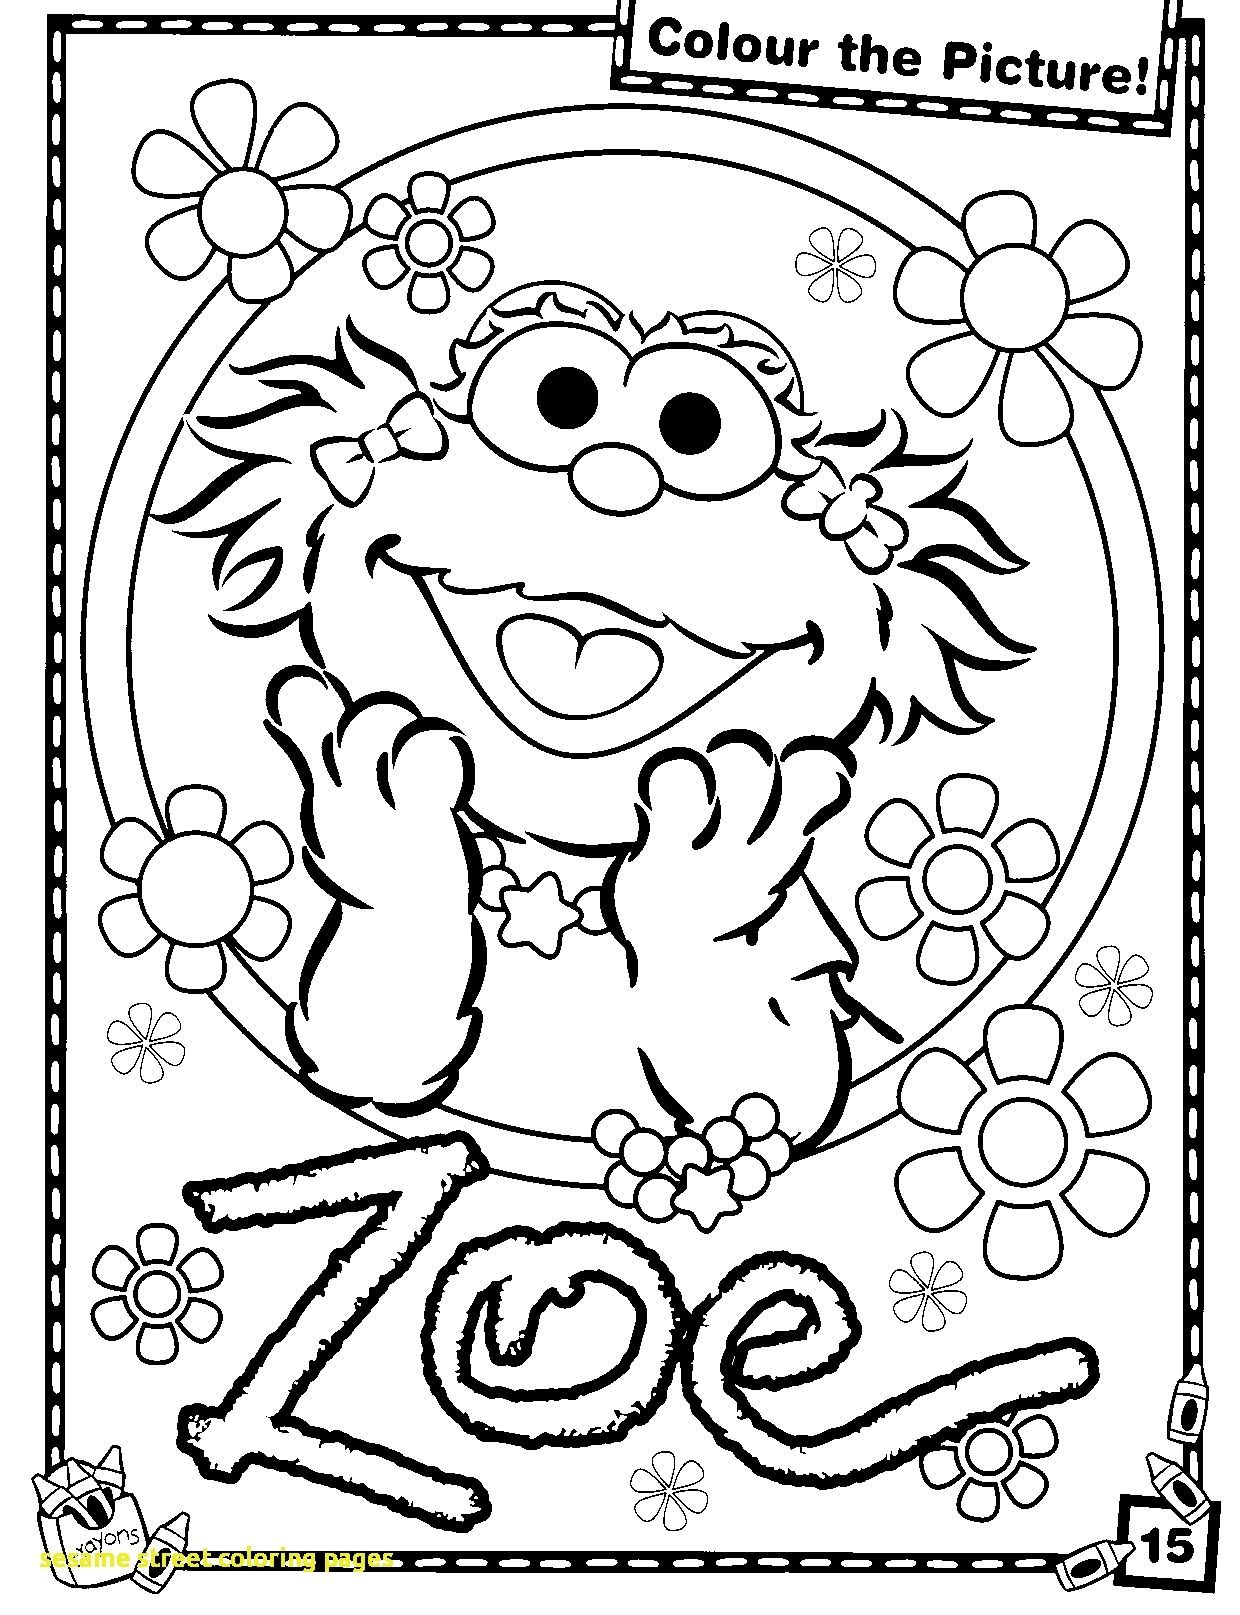 1240x1615 Coloring Book Sesame Street Pages With Superb Zoe Elmo